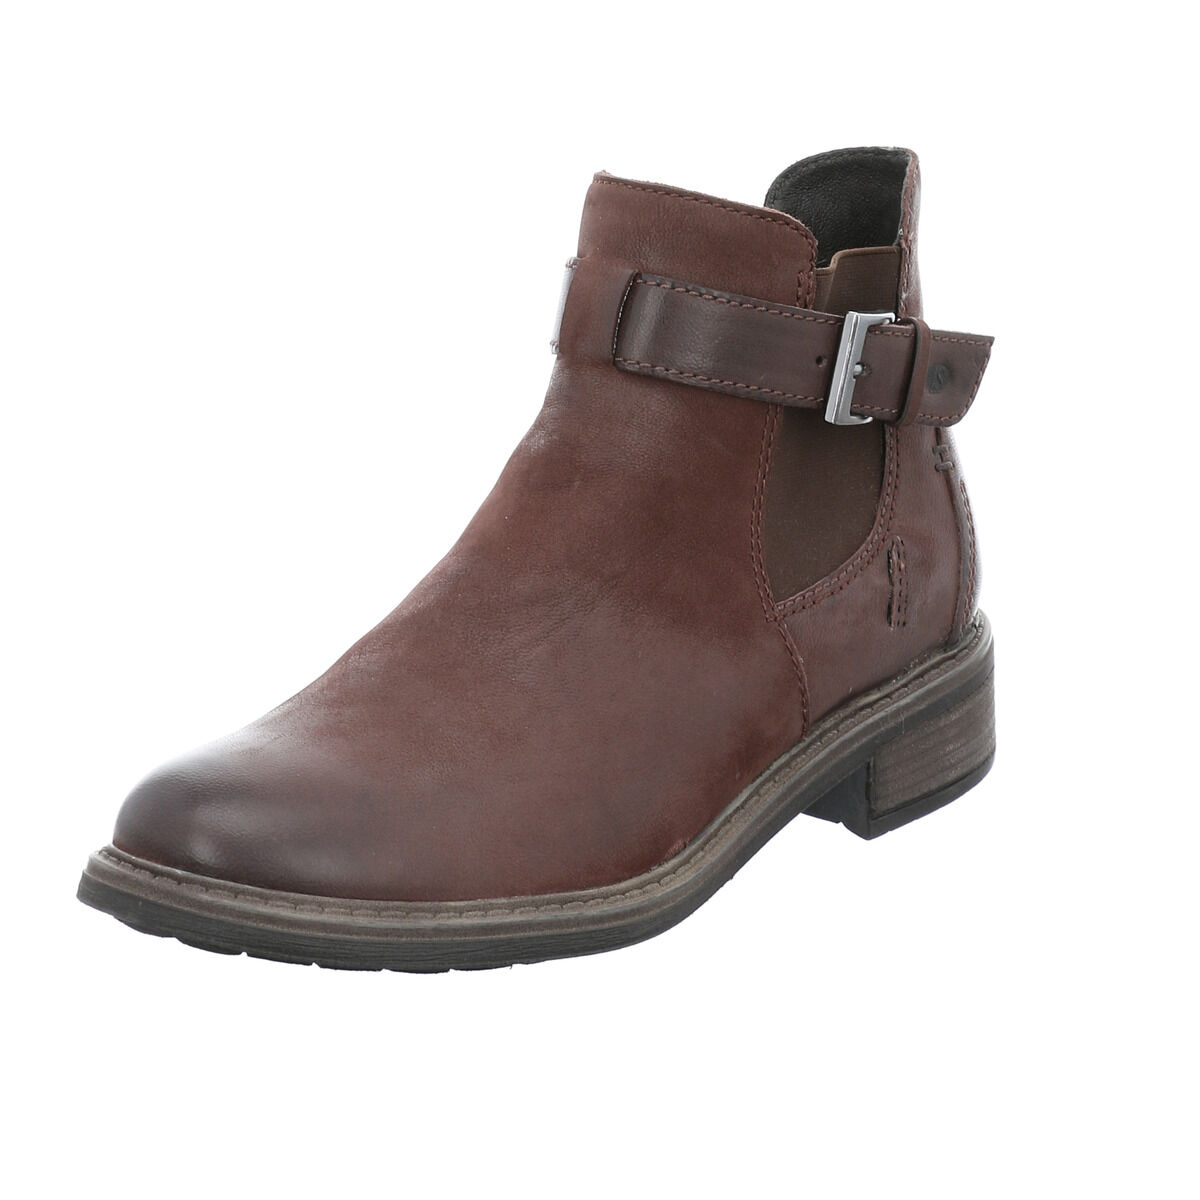 picked up newest collection cheap for discount Damen Kurzstiefelette, braun, 39